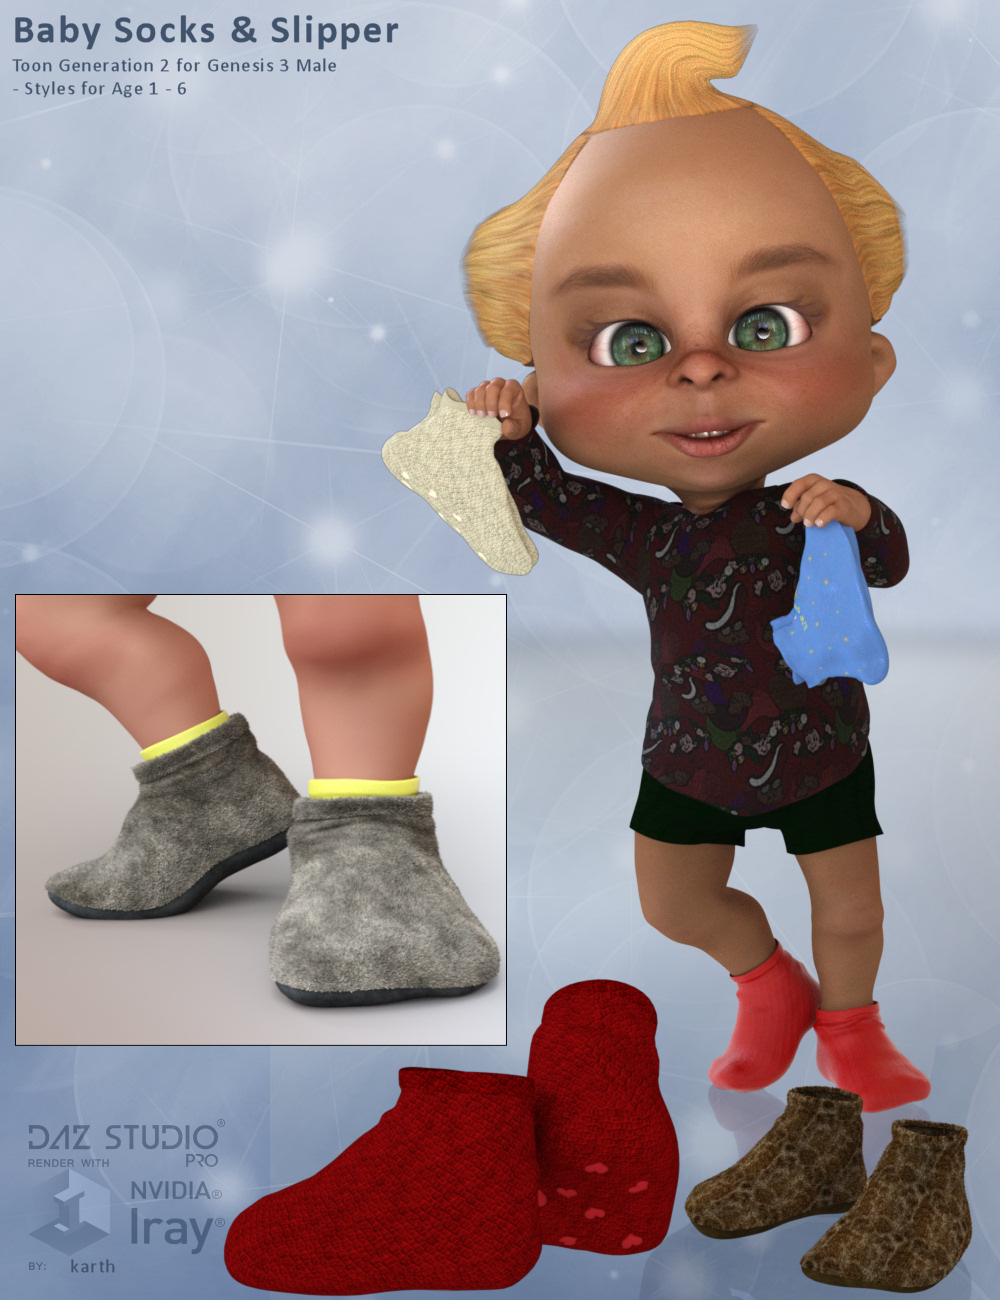 Baby Socks for Toon Generation 2 for Genesis 3 Male by Karth